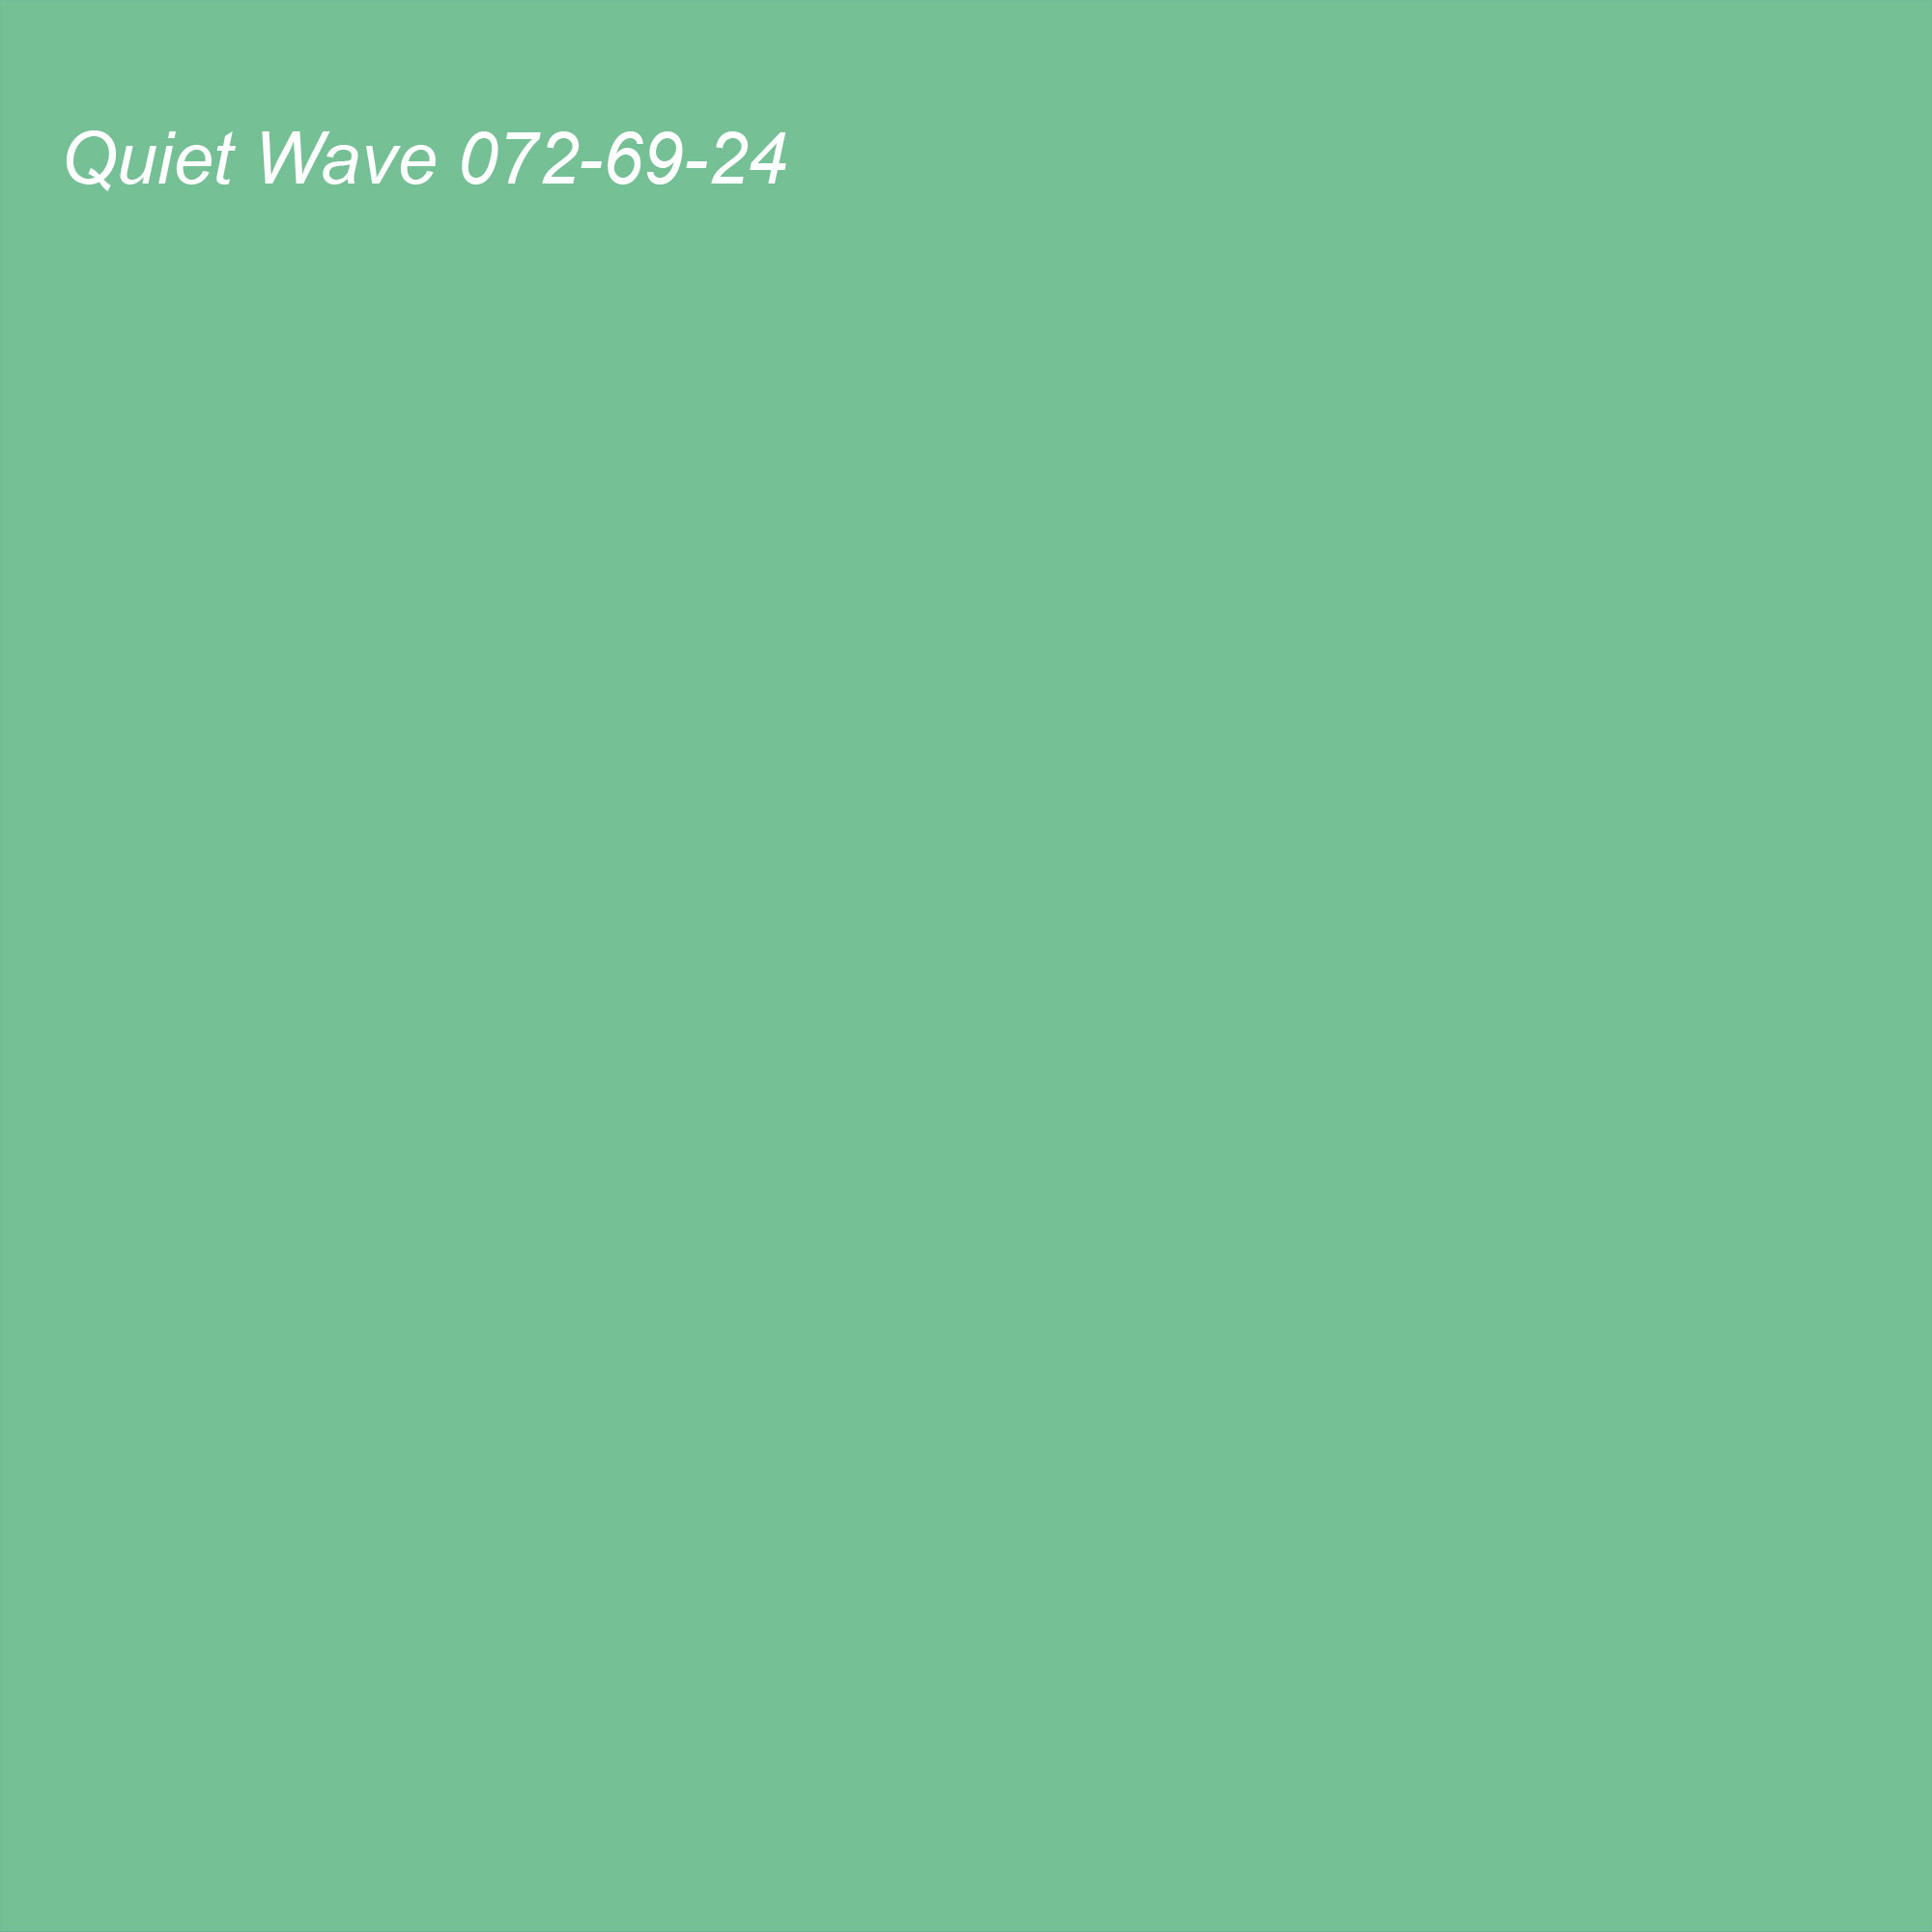 Coloro 2021 Color of the Year Suggested Accent Shade Quiet Wave (green) 072-69-24